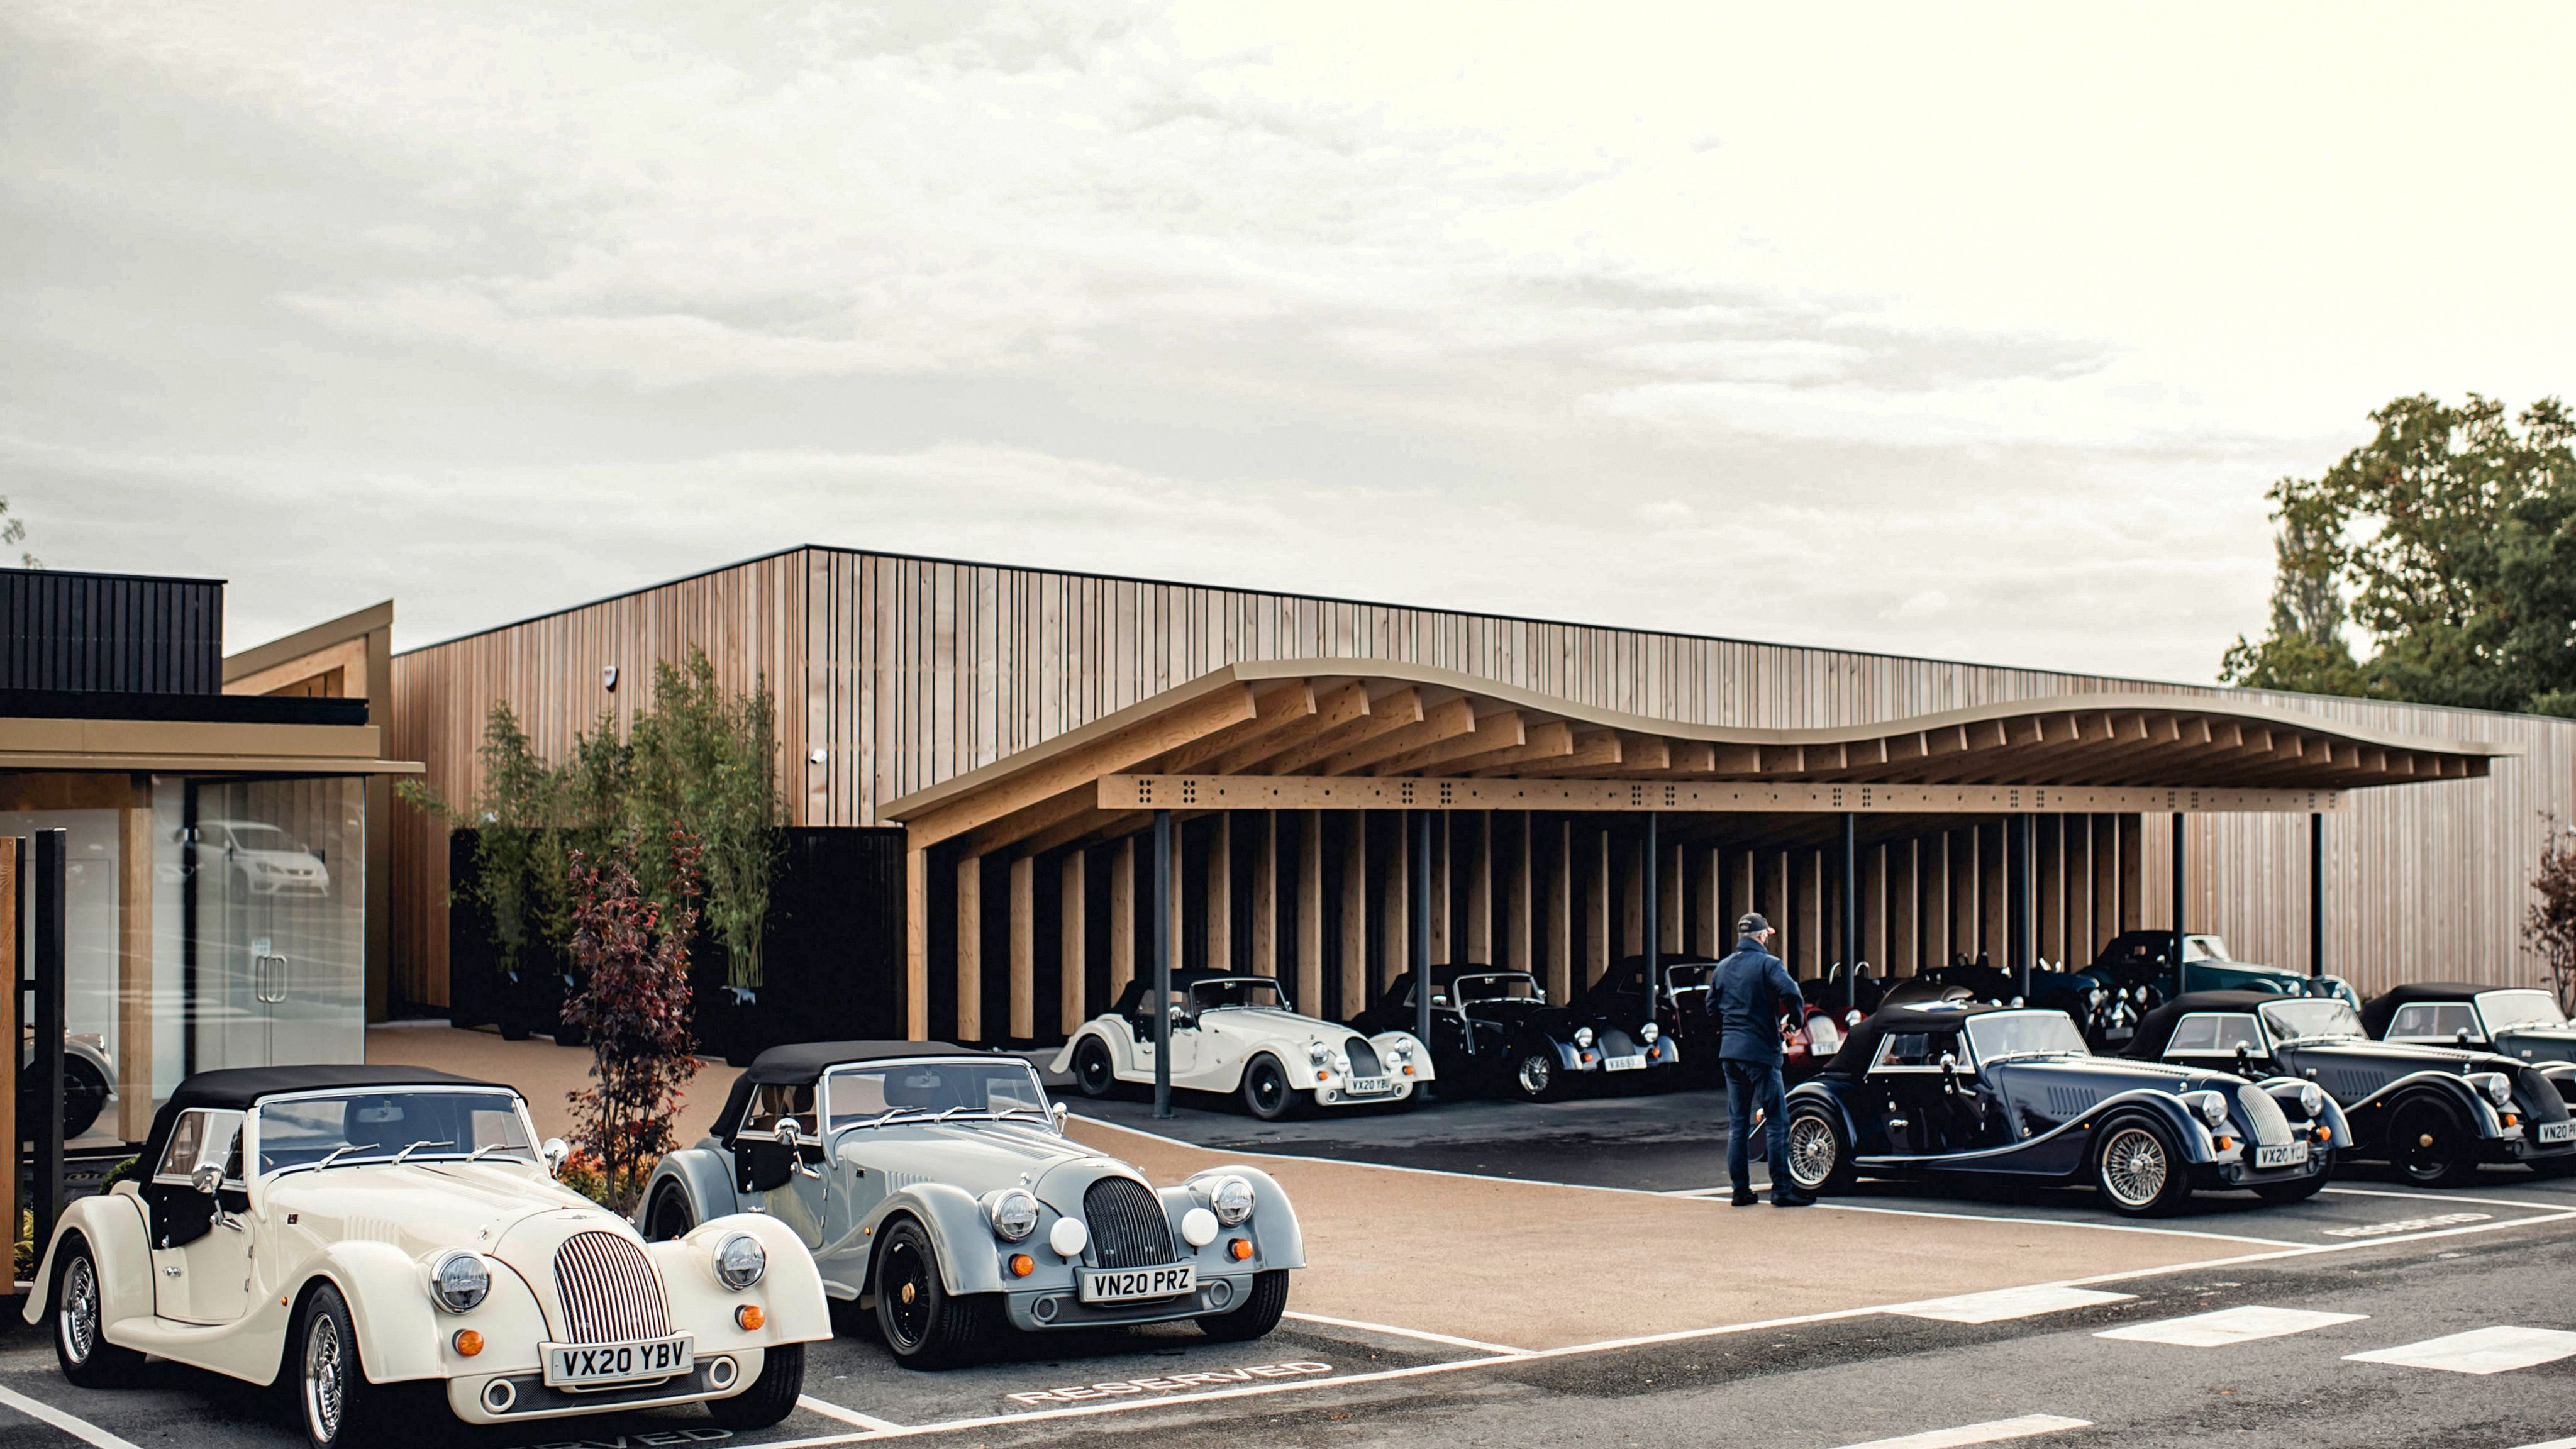 Morgan Motor Gets A Makeover In Malvern We carry a full line of quality new vehicles as well as used cars. morgan motor gets a makeover in malvern